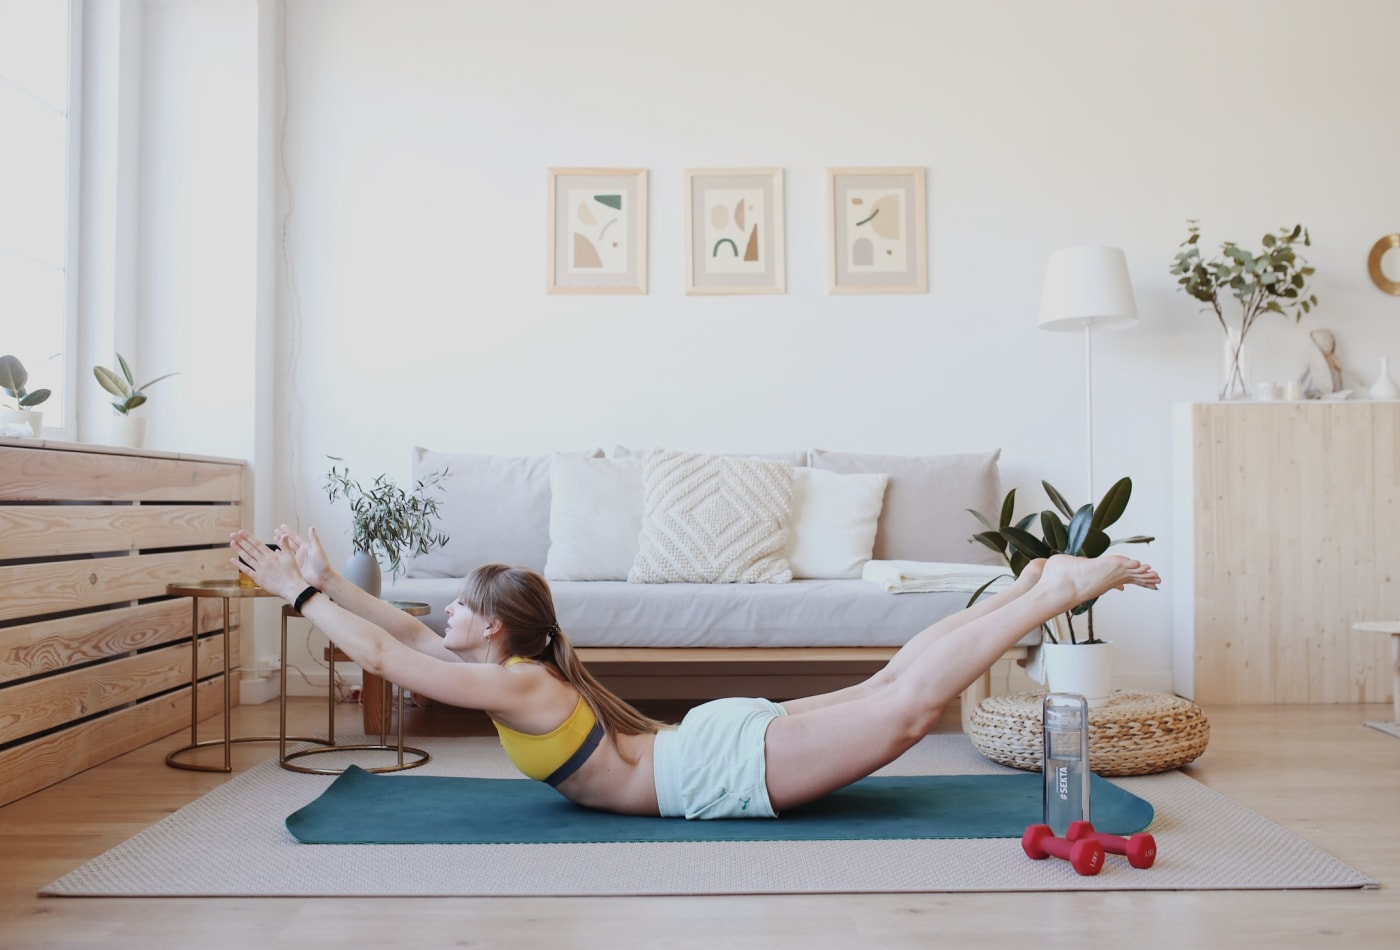 At-Home Workouts Guidance During COVID-19